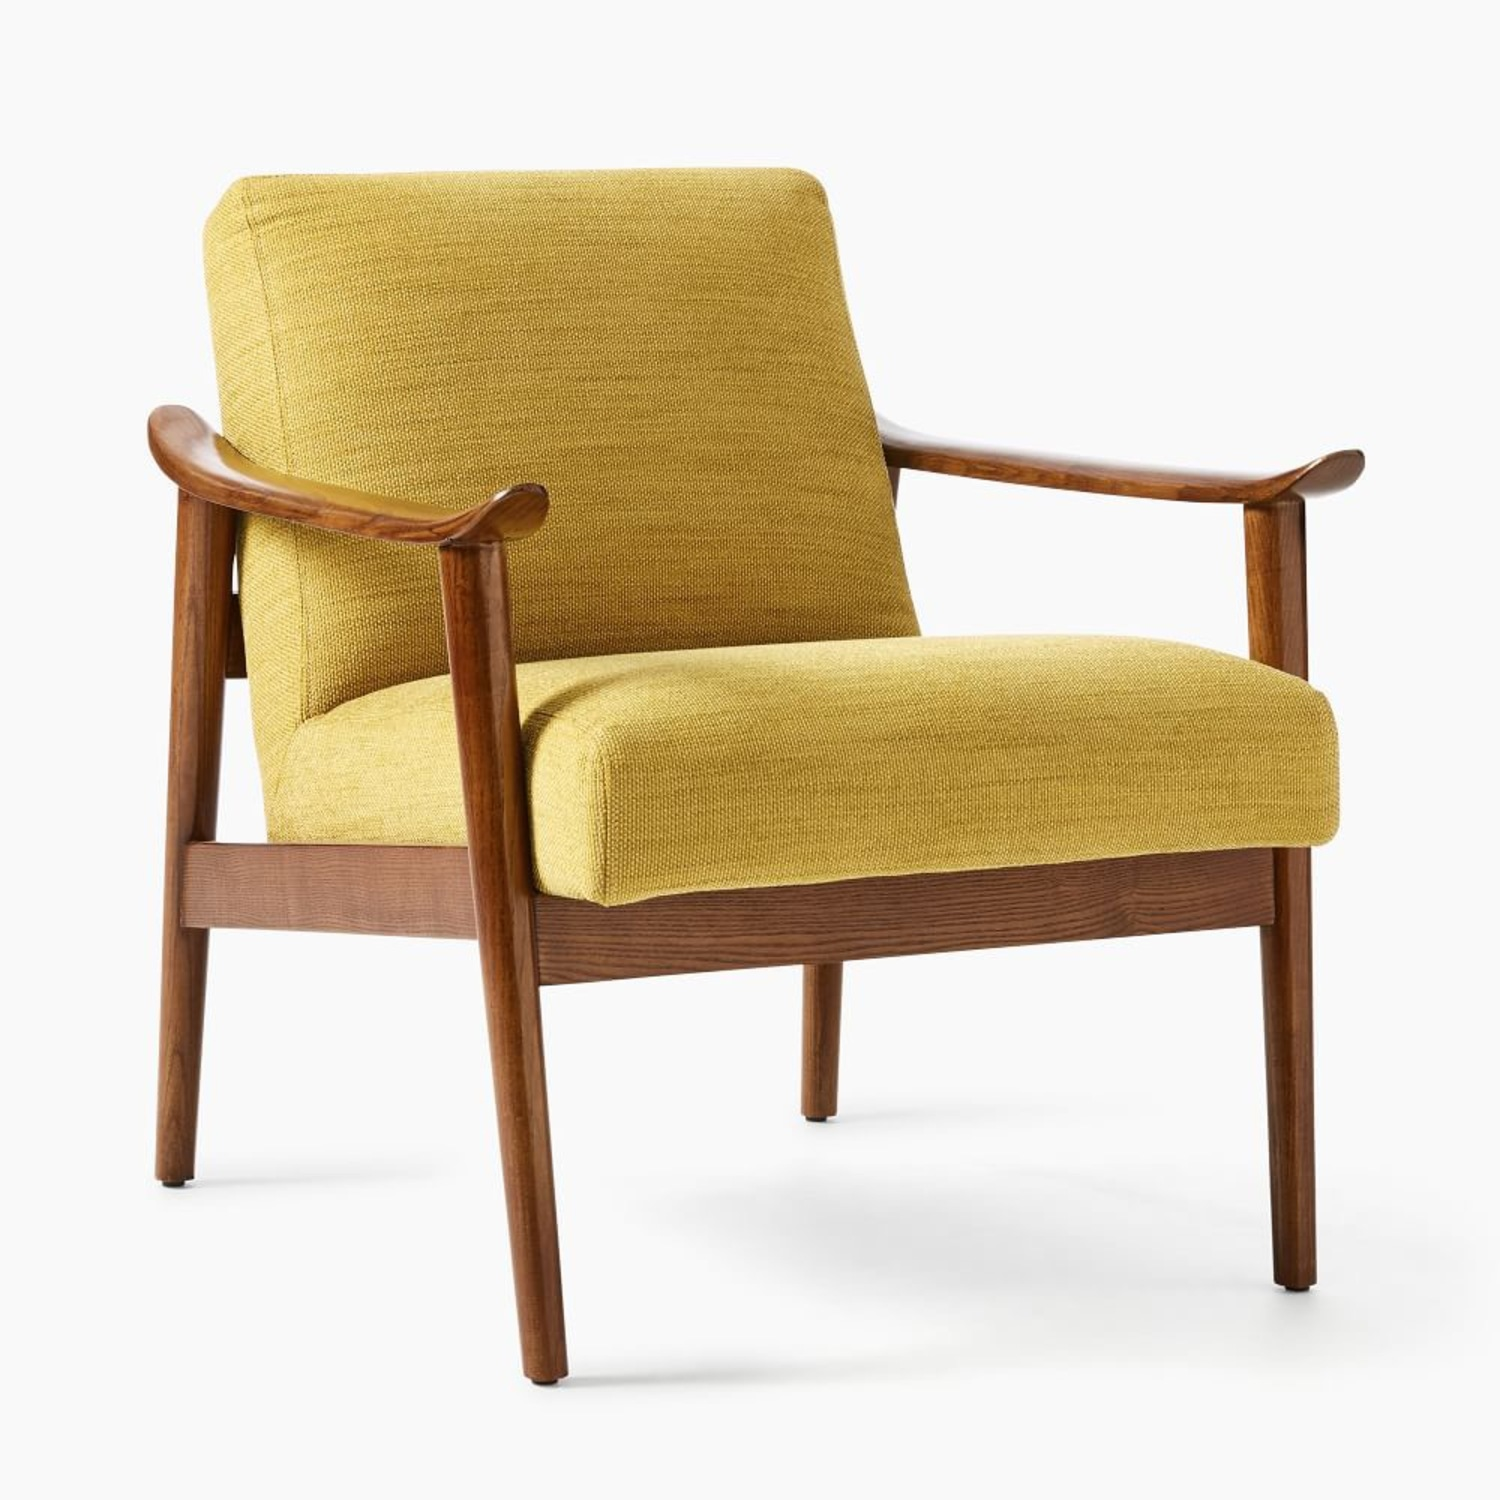 West Elm Mid Century Show Wood Chair - image-1